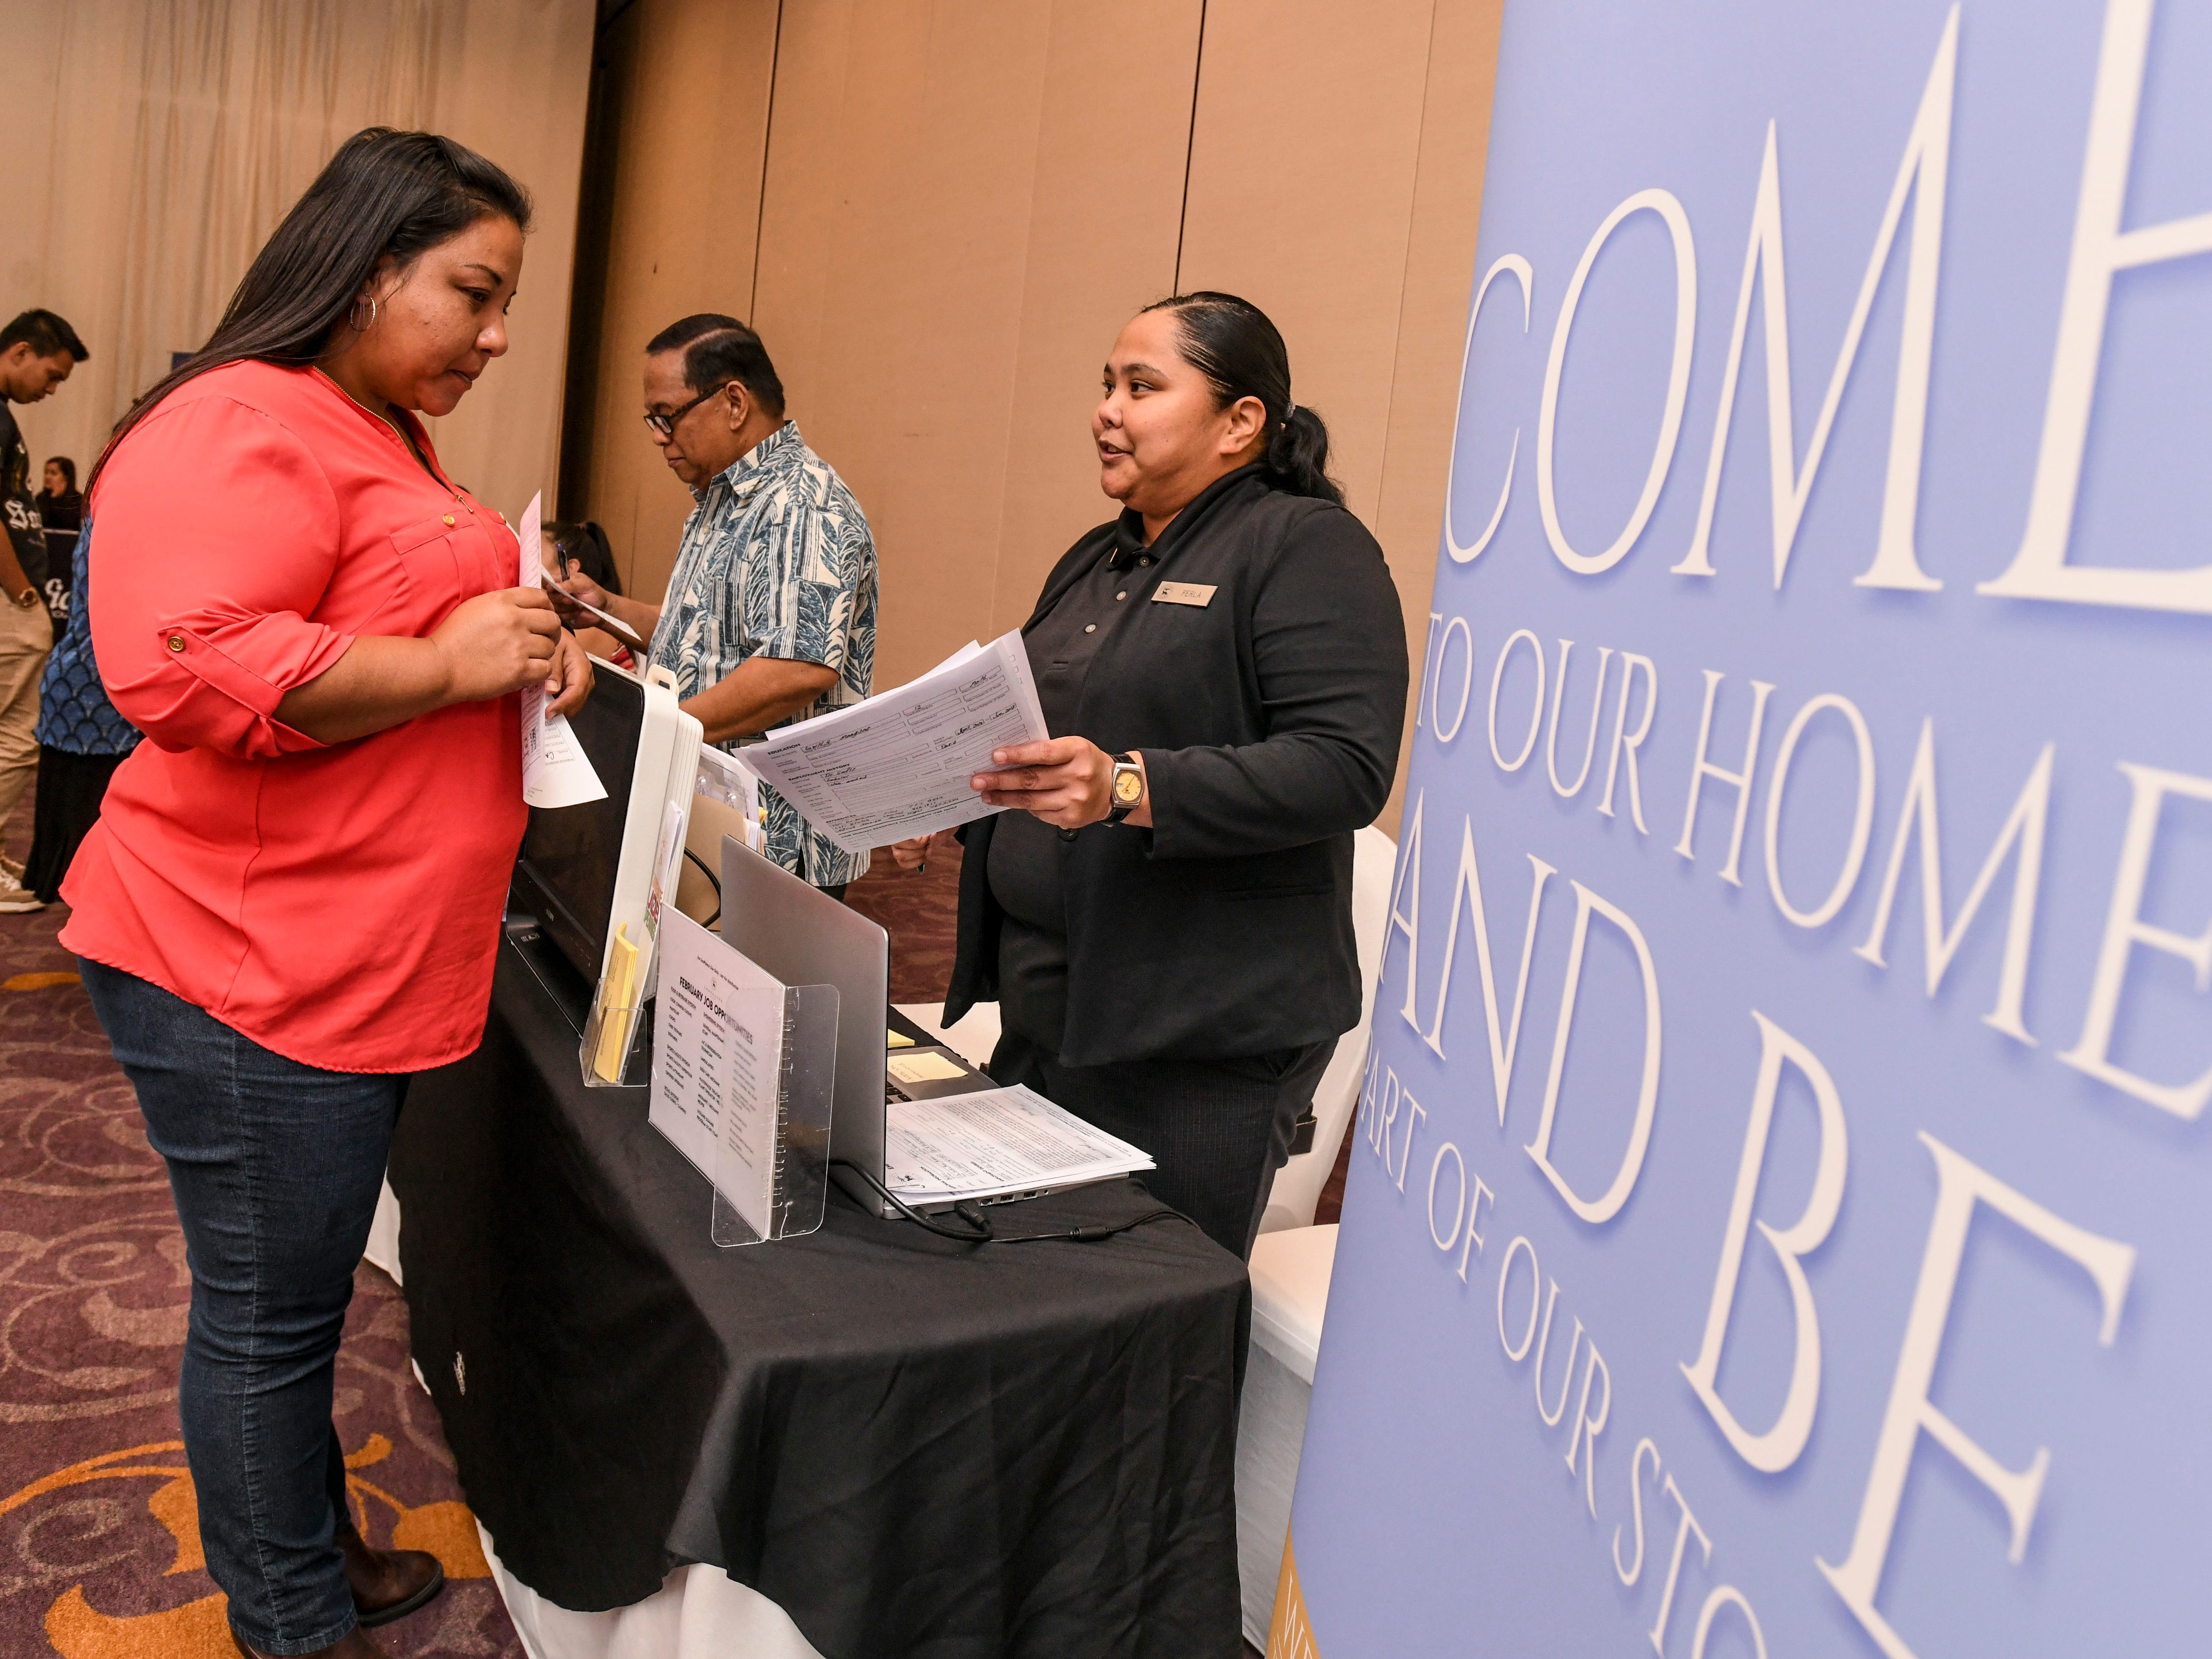 """Perla Mendiola, right, LeoPalace Resort Guam human resource employee, chats with a prospective applicant during the Guam Chamber of Commerce's Women's Network 4th annual """"Propel Yourself"""" job fair at the Hyatt Regency Guam in Tumon on Friday, Feb. 8, 2019."""